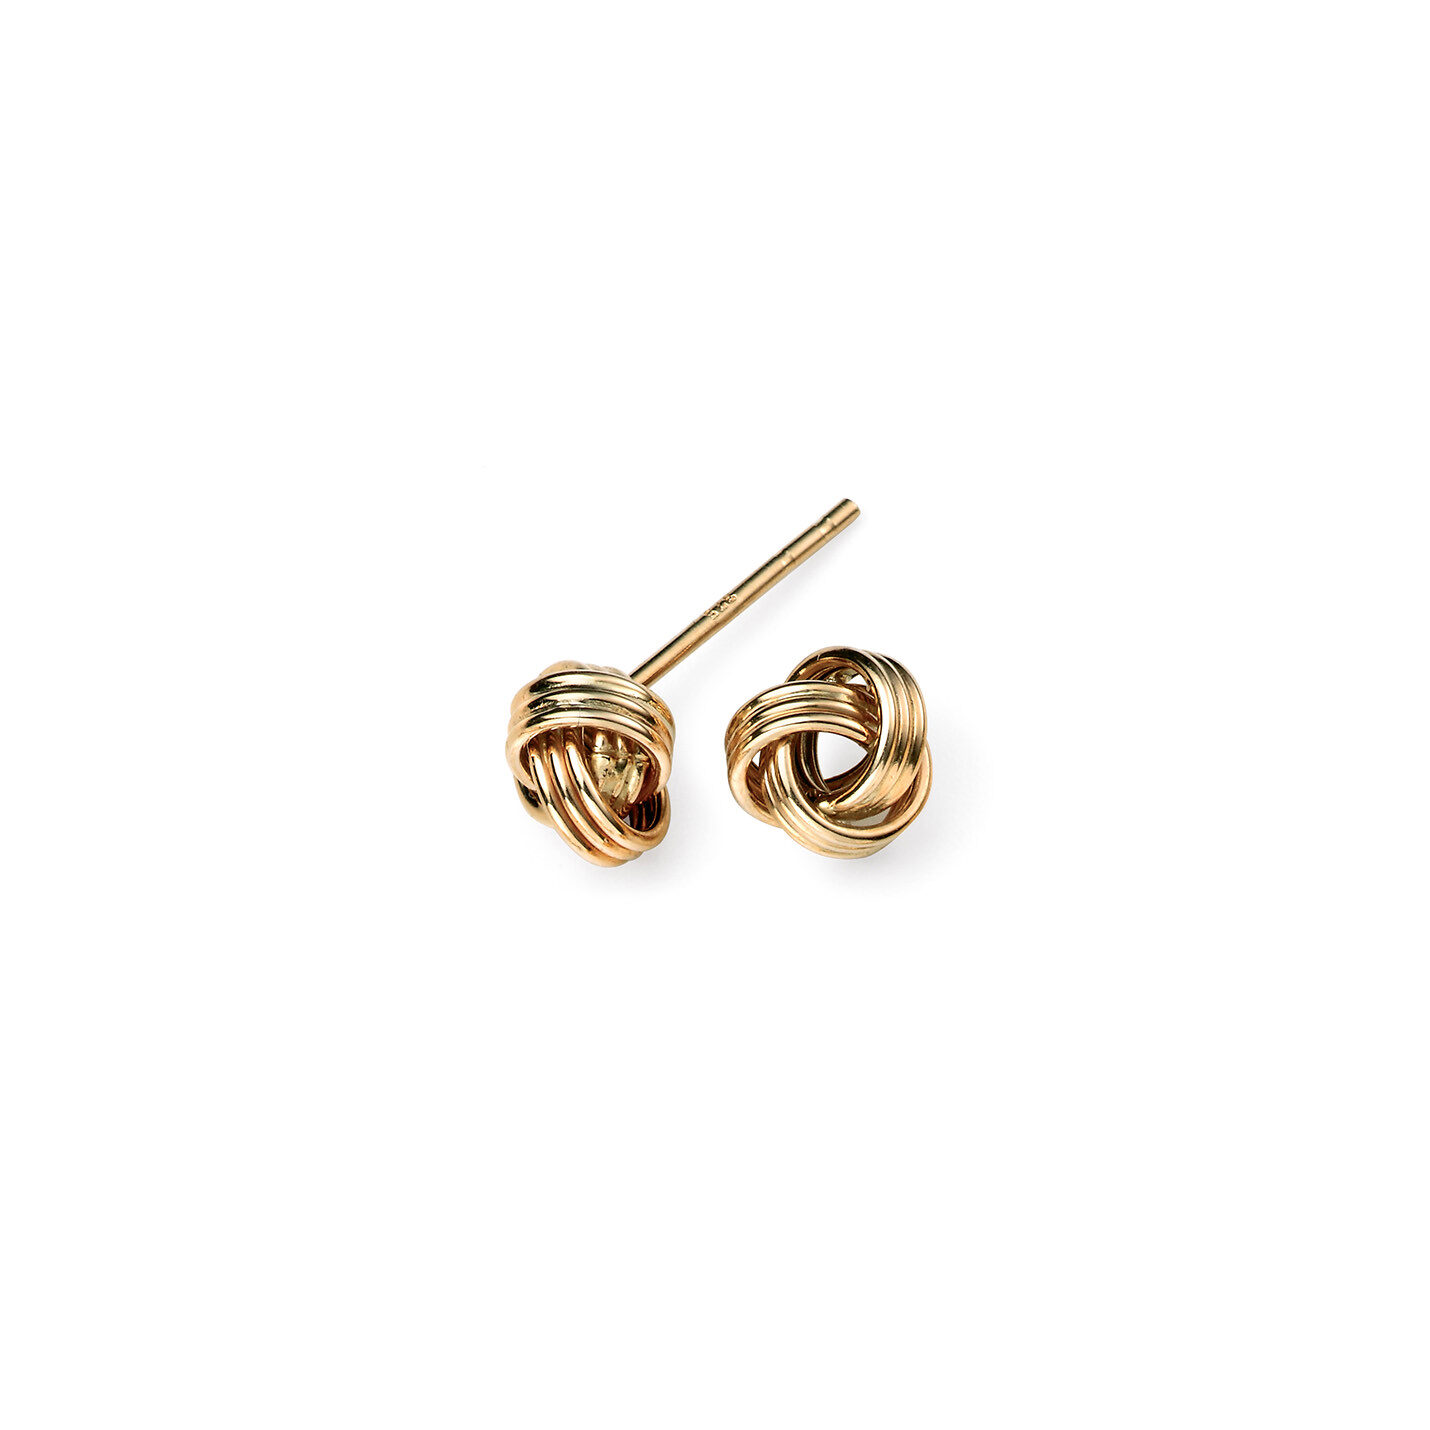 Murphy Jewellers top selling stud earring: the Gold Knot.  Classic and chic